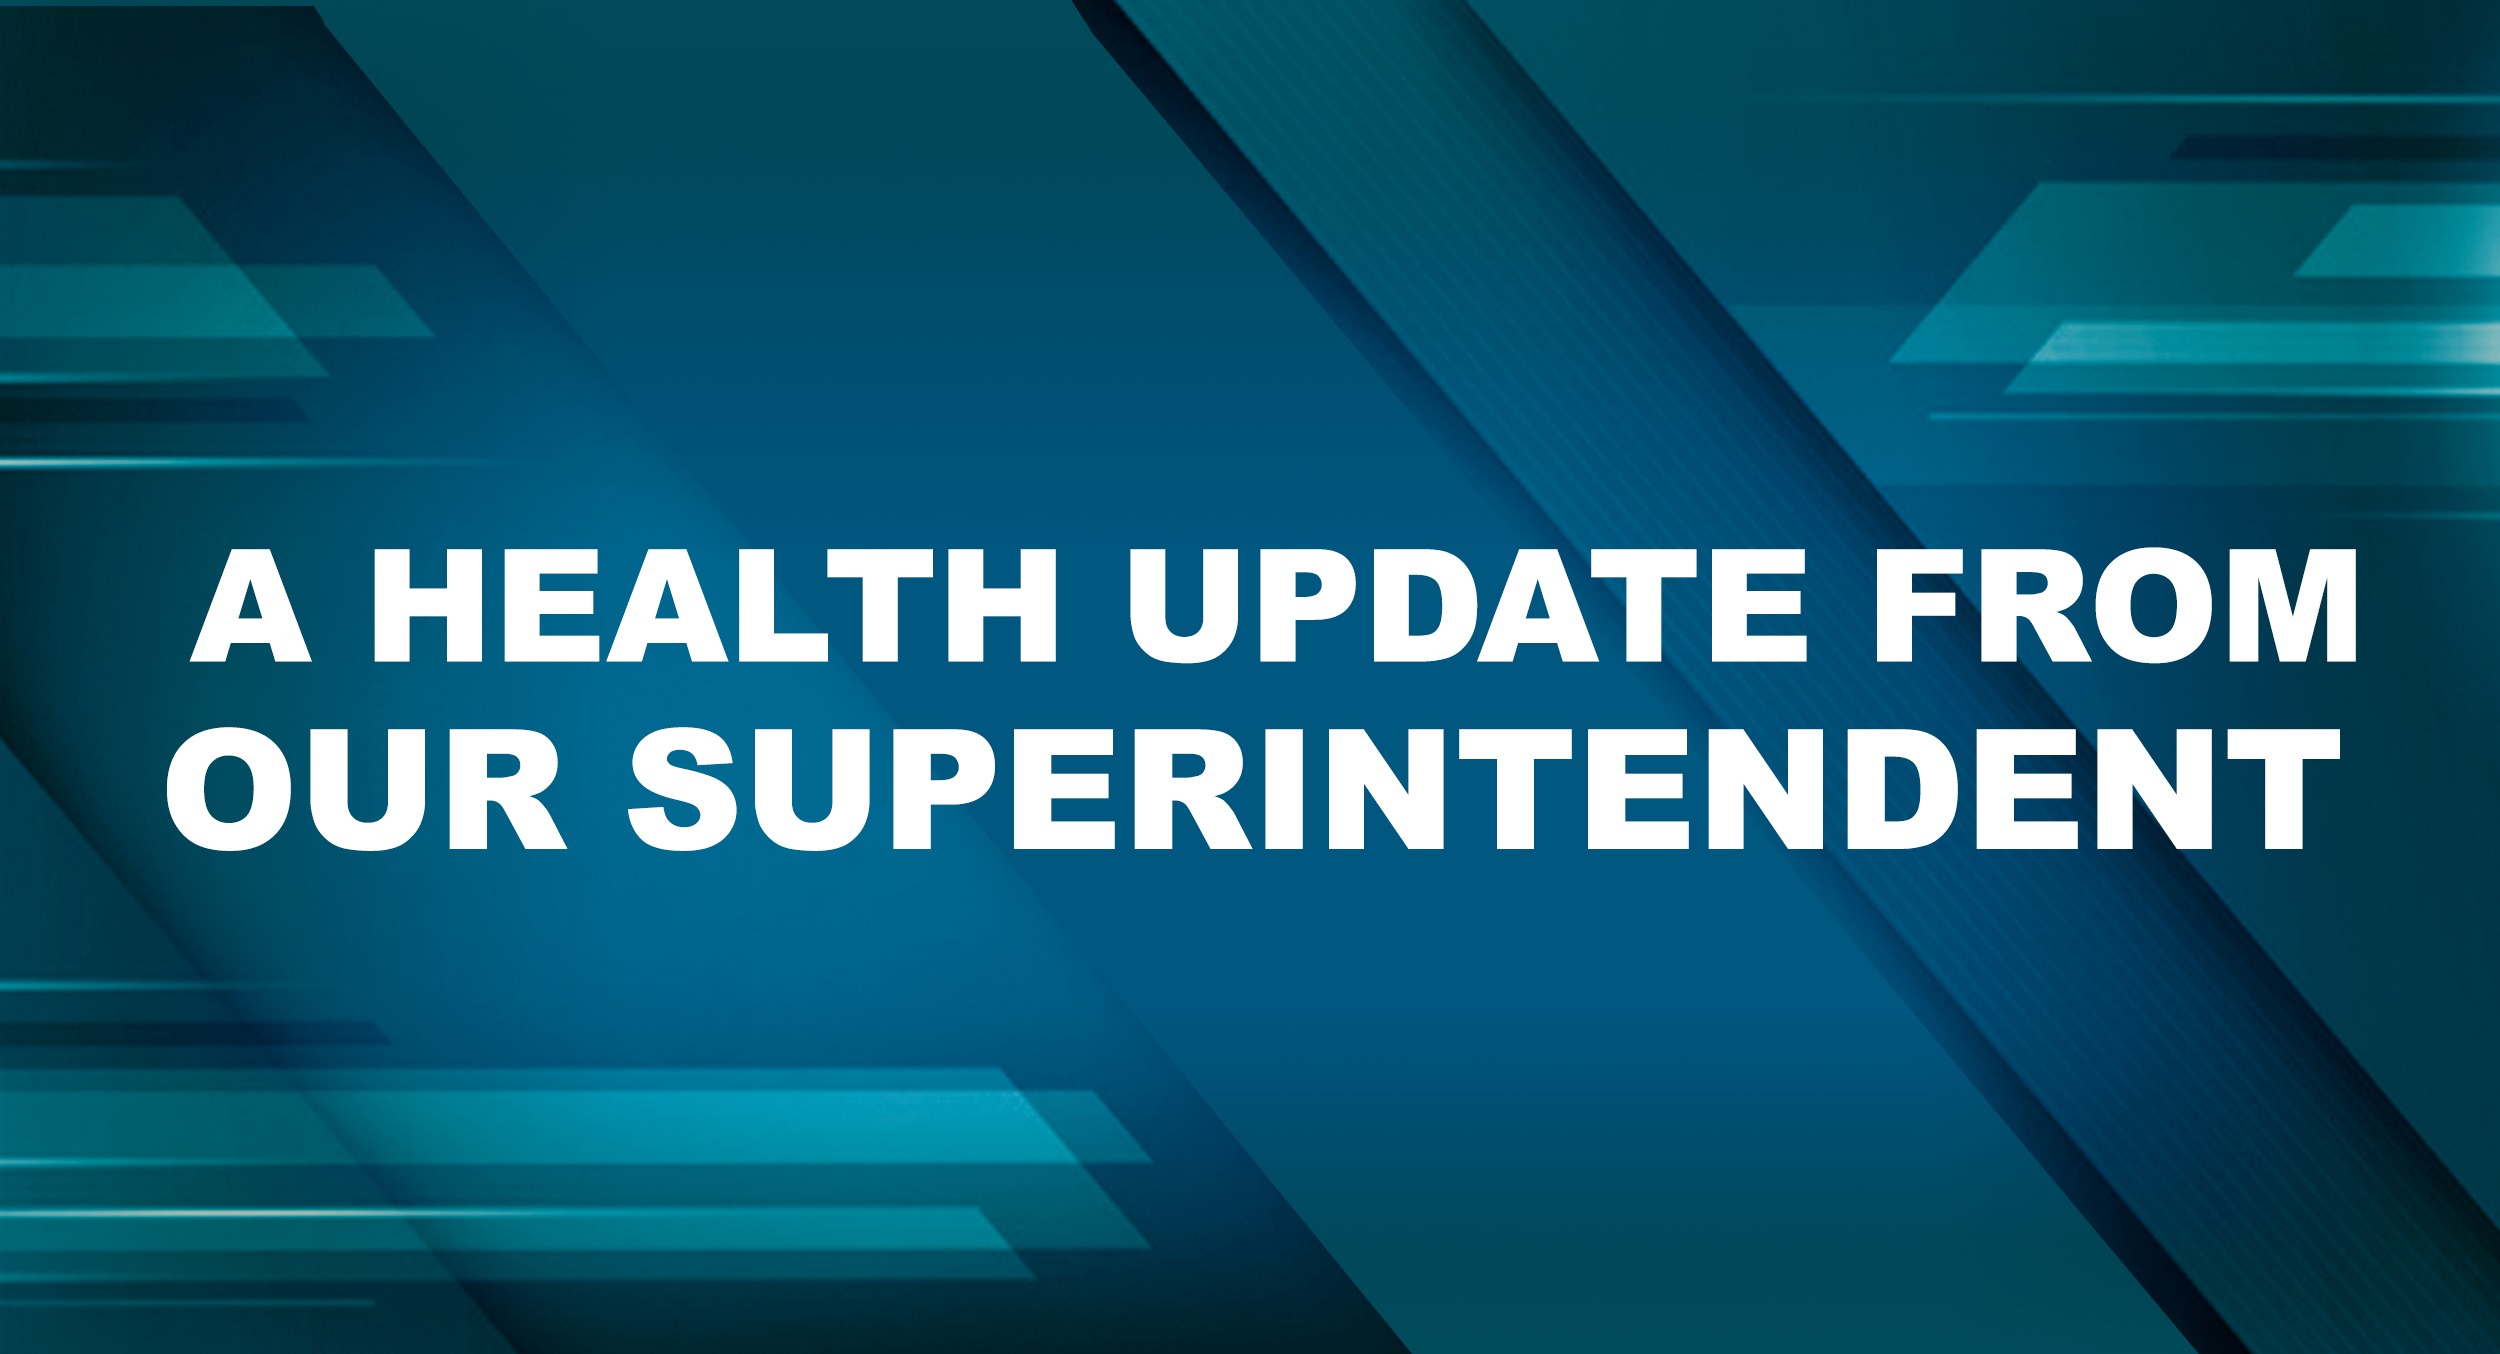 An important health update from our Superintendent ...